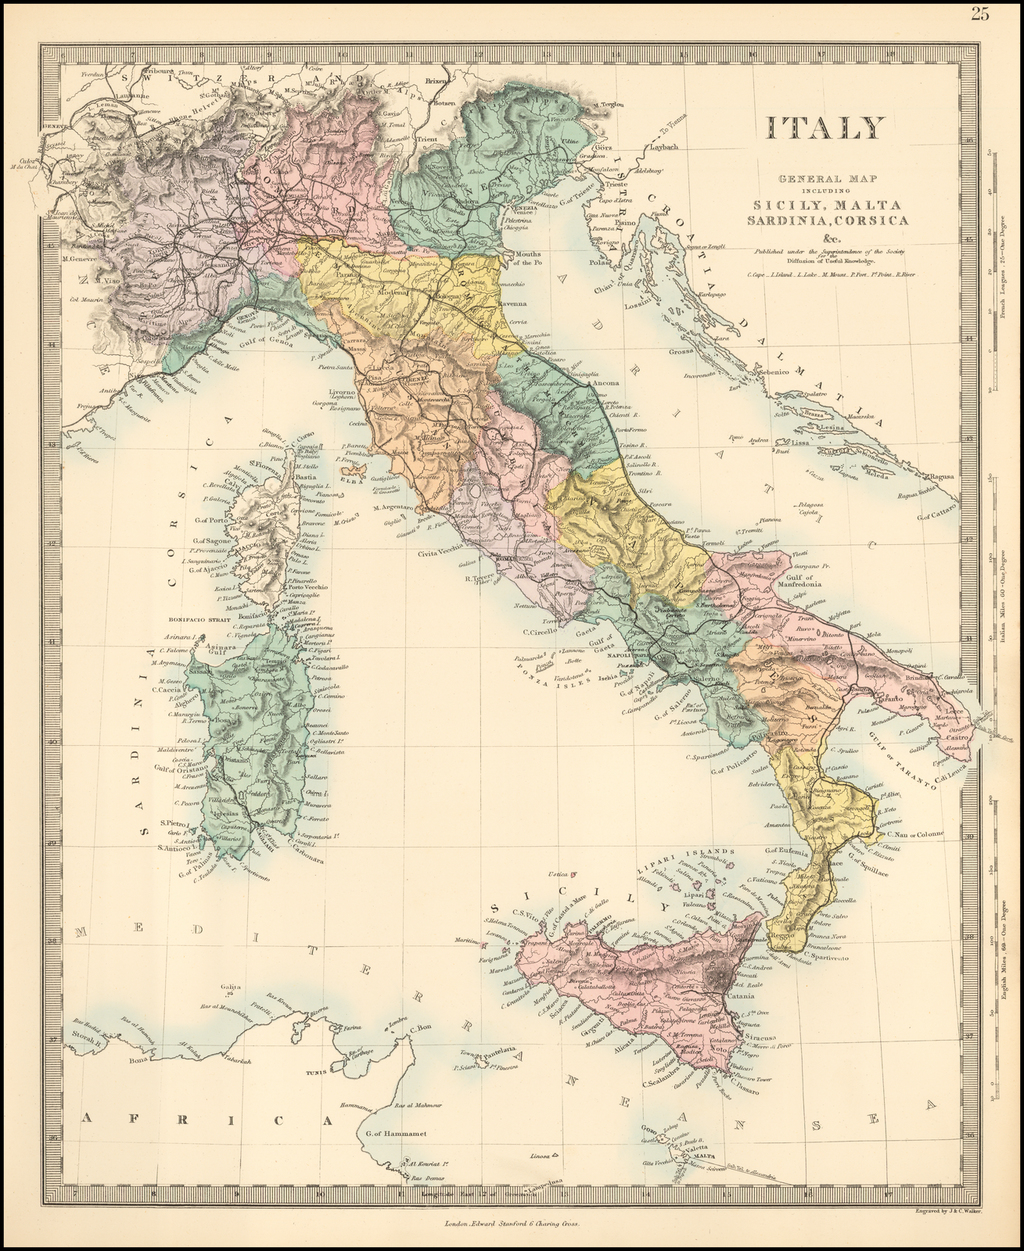 Sicily On Map Of Italy.Italy General Map Including Sicily Malta Sardinia Corsica C